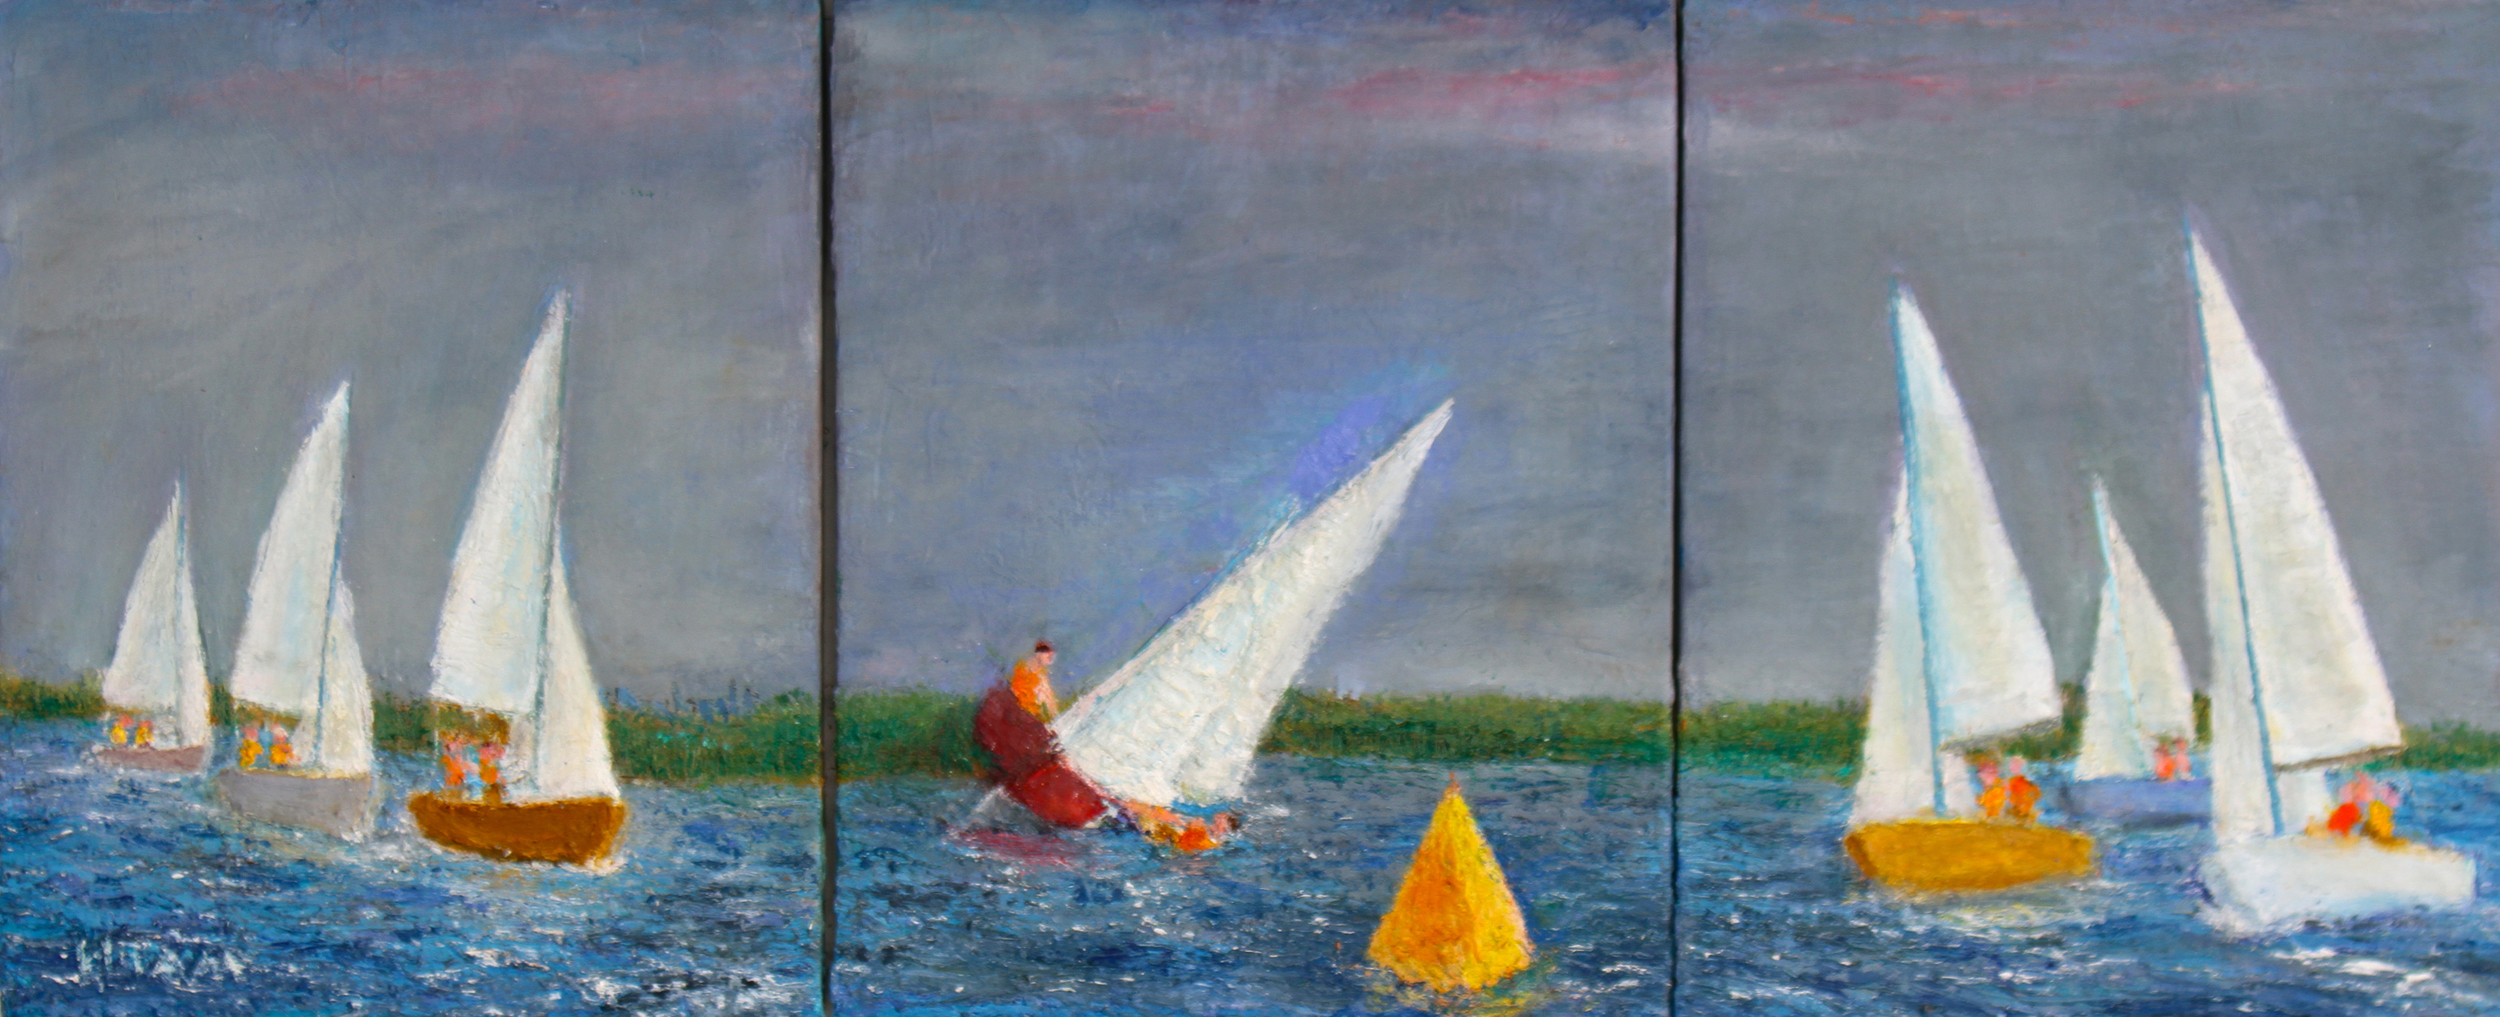 DickElam Capsize at Windward Mark_Approx 14x36 triptych_oil.jpg